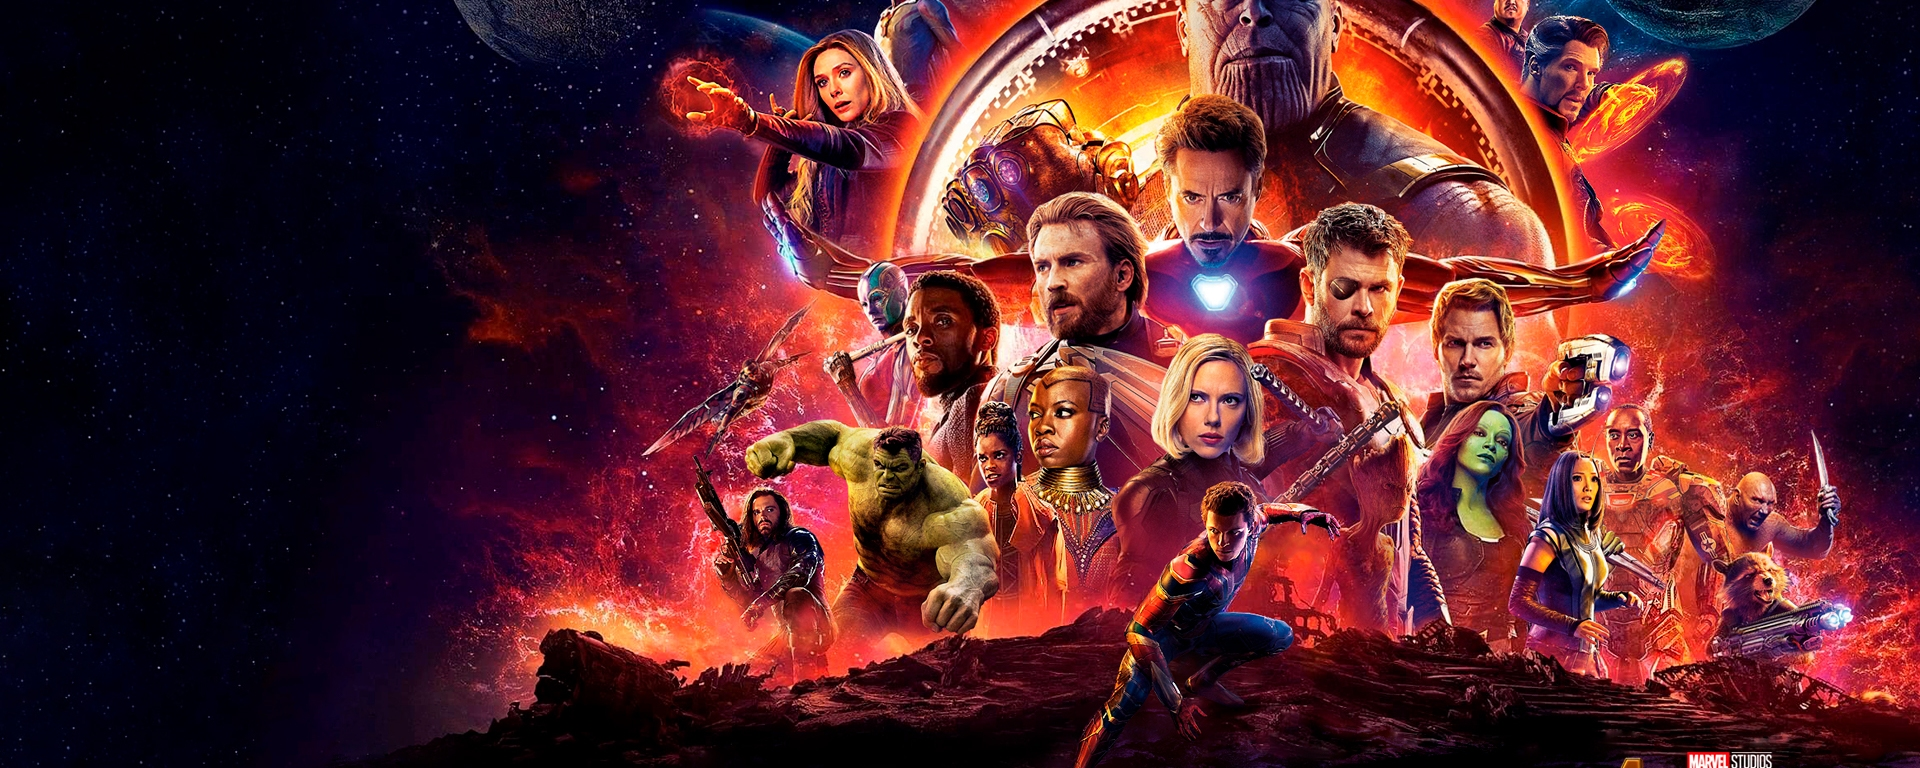 1er Wallpaper – Avengers: Infinity War